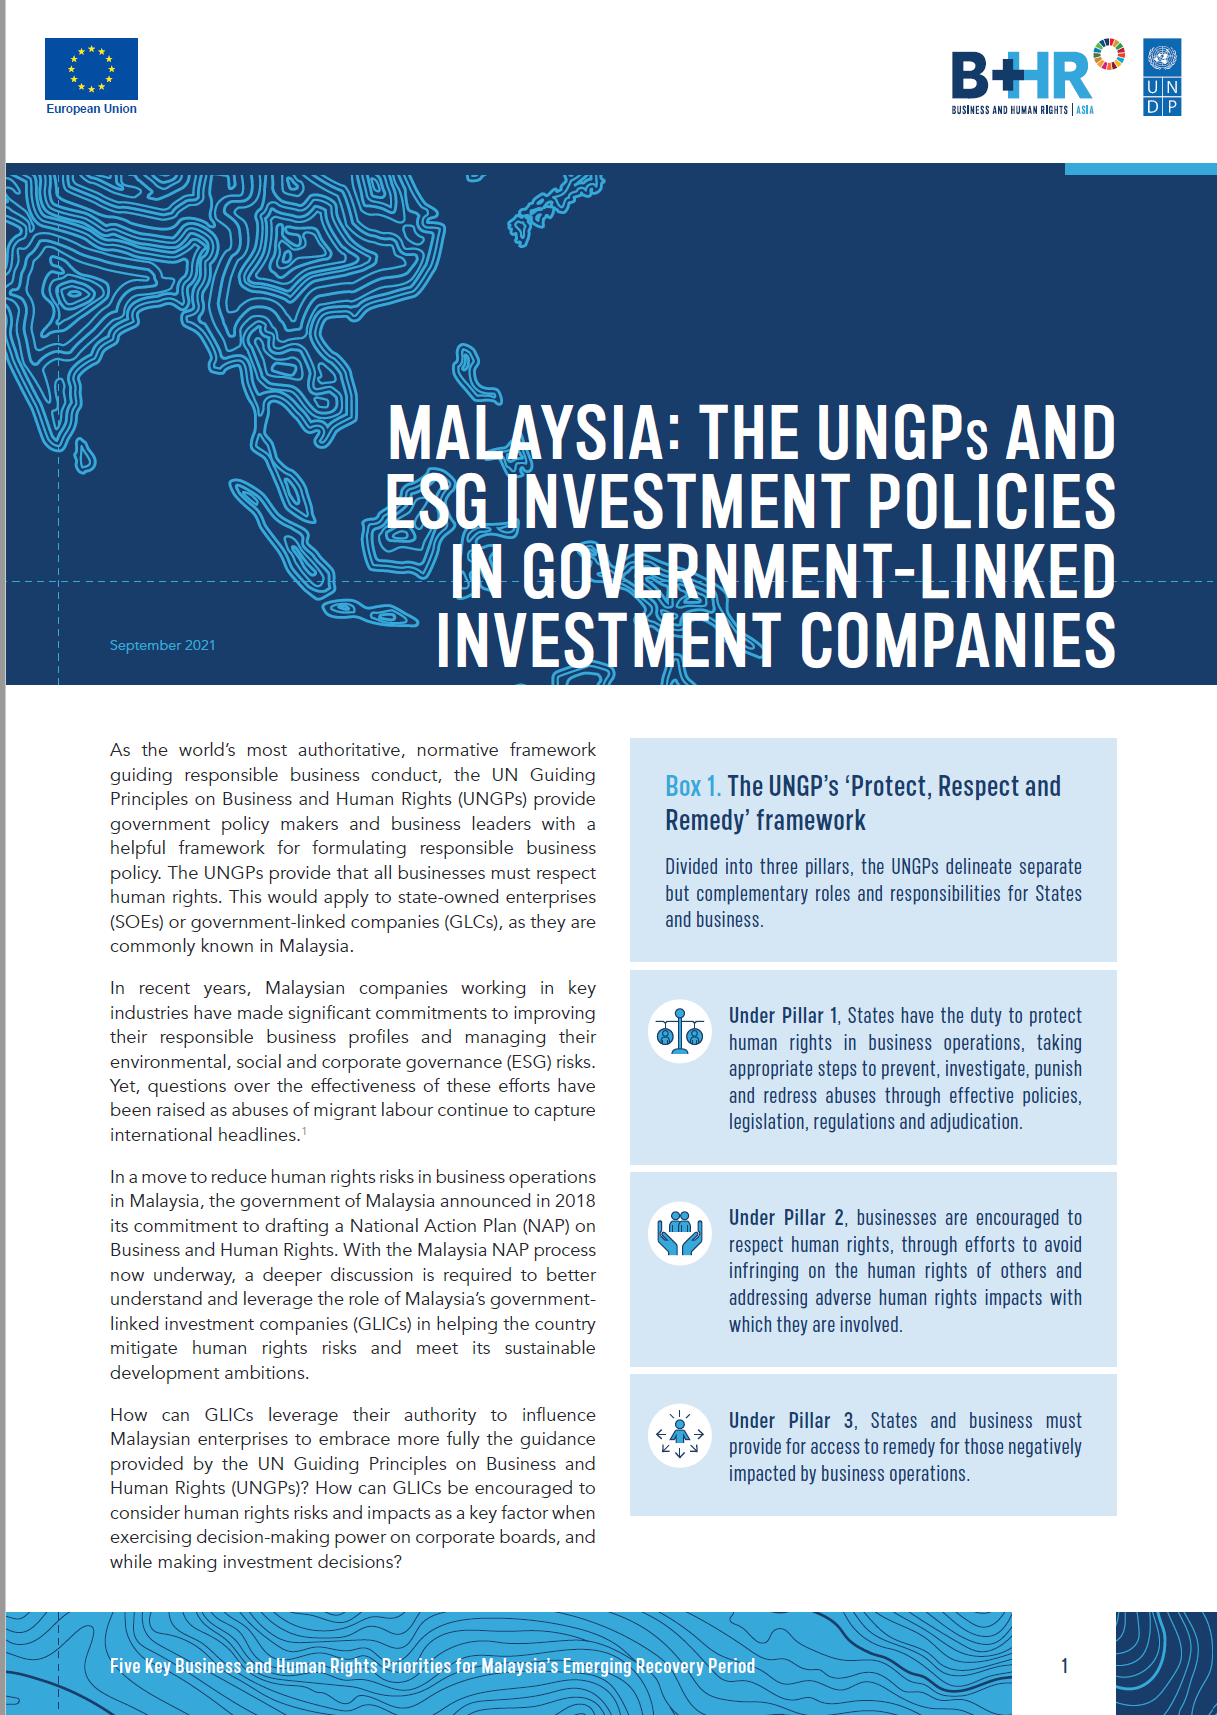 Issue Brief: Malaysia: The UNGPs And ESG Investment Policies in Government-linked Investment Companies